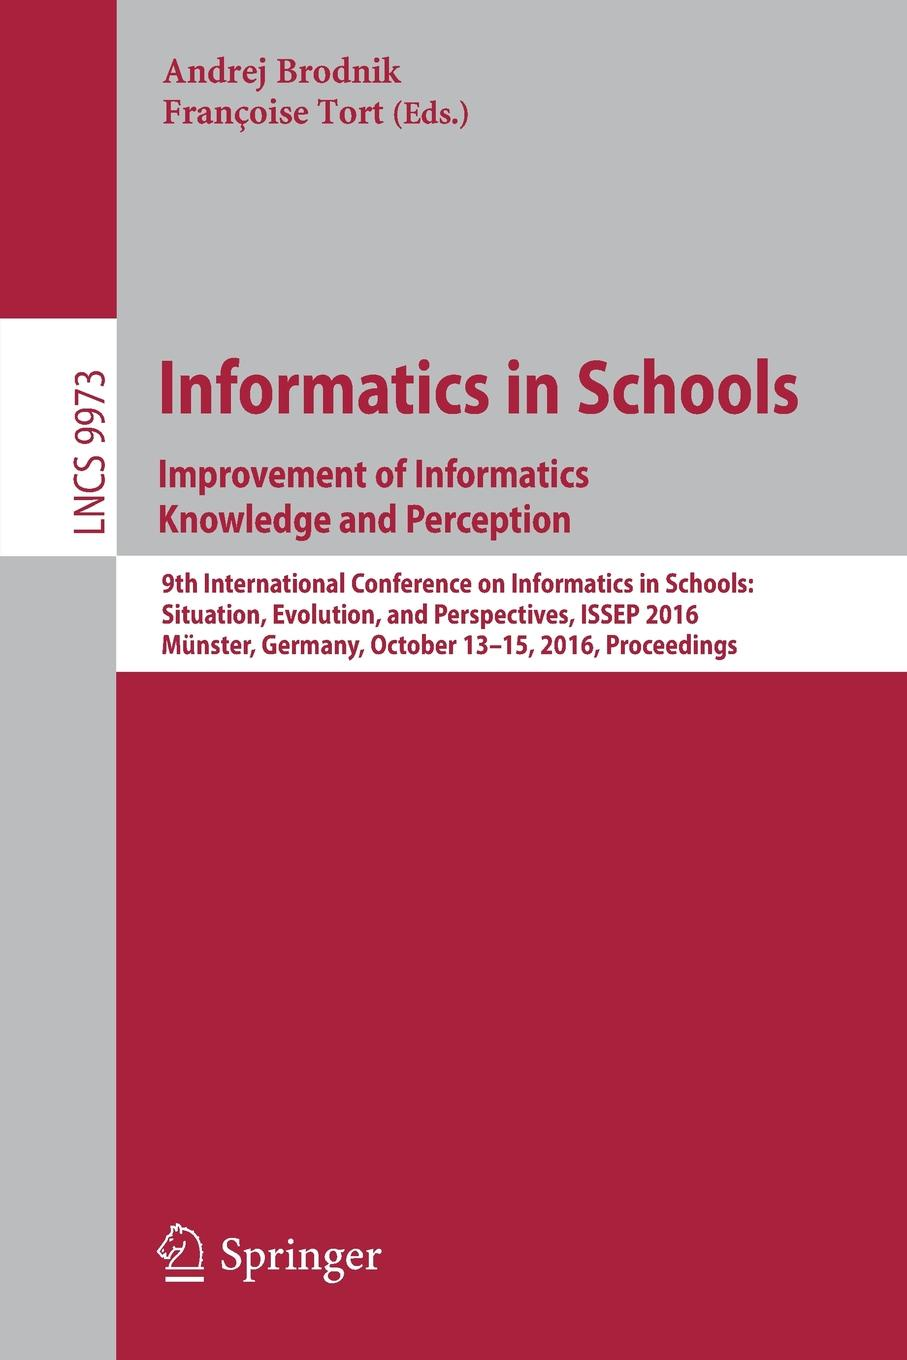 Informatics in Schools. Improvement of Informatics Knowledge and Perception : 9th International Conference on Informatics in Schools: Situation, Evolution, and Perspectives, ISSEP 2016, Munster, Germany, October 13-15, 2016, Proceedings christian blum metaheuristics for string problems in bio informatics